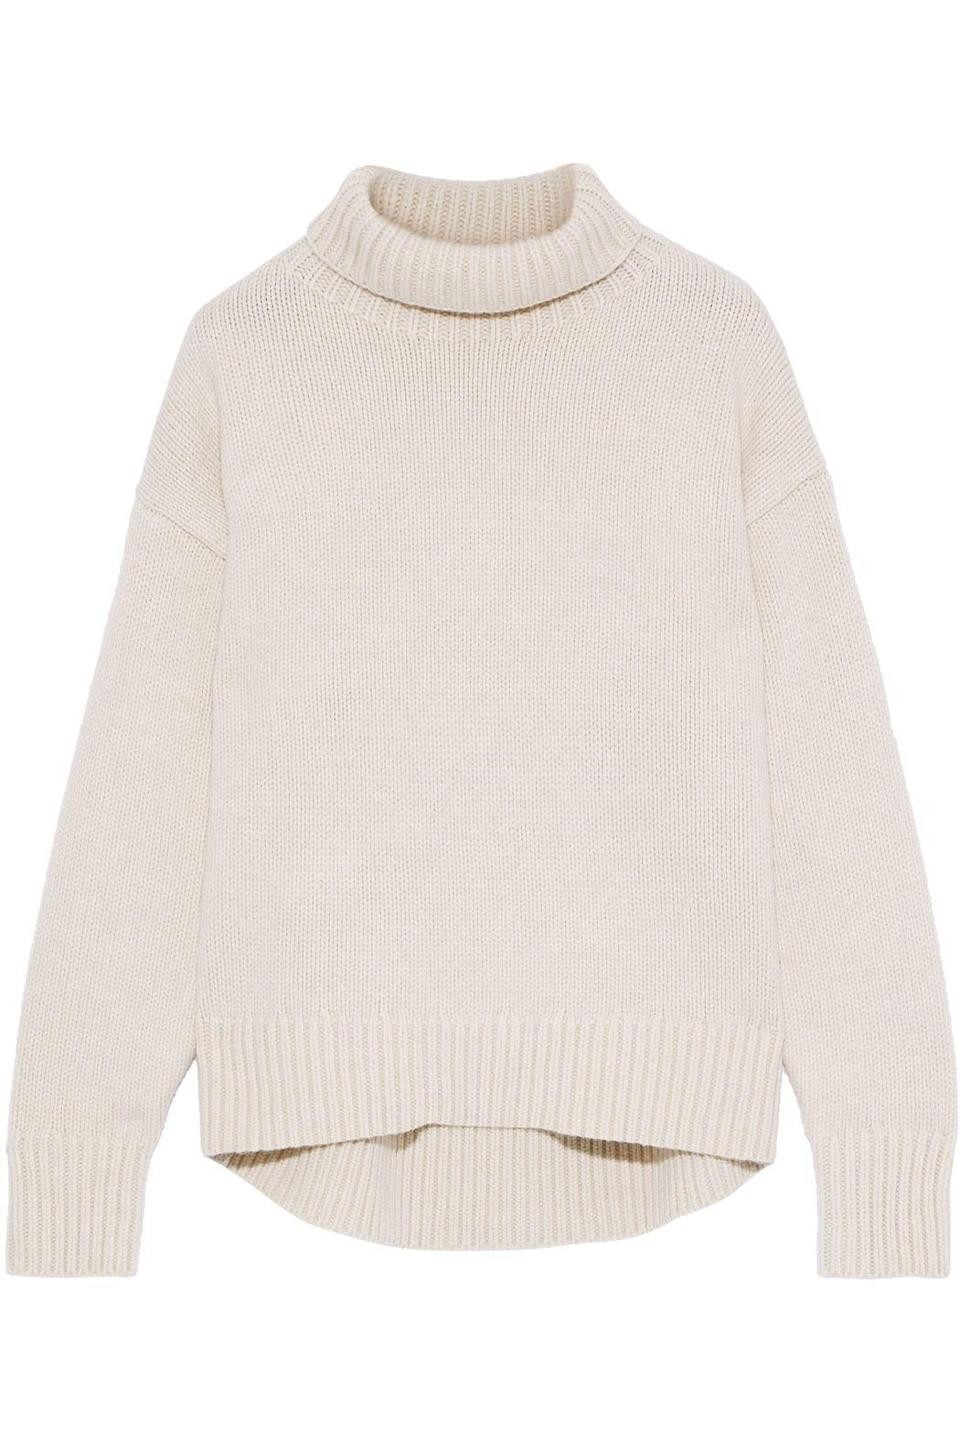 """<p><strong>Rag & Bone</strong></p><p>theoutnet.com</p><p><strong>$112.00</strong></p><p><a href=""""https://go.redirectingat.com?id=74968X1596630&url=https%3A%2F%2Fwww.theoutnet.com%2Fen-us%2Fshop%2Fproduct%2Frag-bone%2Fknitwear%2Fmedium-knit%2Flunet-wool-turtleneck-sweater%2F24092600056621724&sref=https%3A%2F%2Fwww.marieclaire.com%2Ffashion%2Fg33594594%2Fthe-outnet-summer-sale-2020%2F"""" rel=""""nofollow noopener"""" target=""""_blank"""" data-ylk=""""slk:SHOP IT"""" class=""""link rapid-noclick-resp"""">SHOP IT</a></p><p>Take a look at your sweater collection and consider adding this Rag & Bone piece as a fresh option into your daily rotation.</p>"""